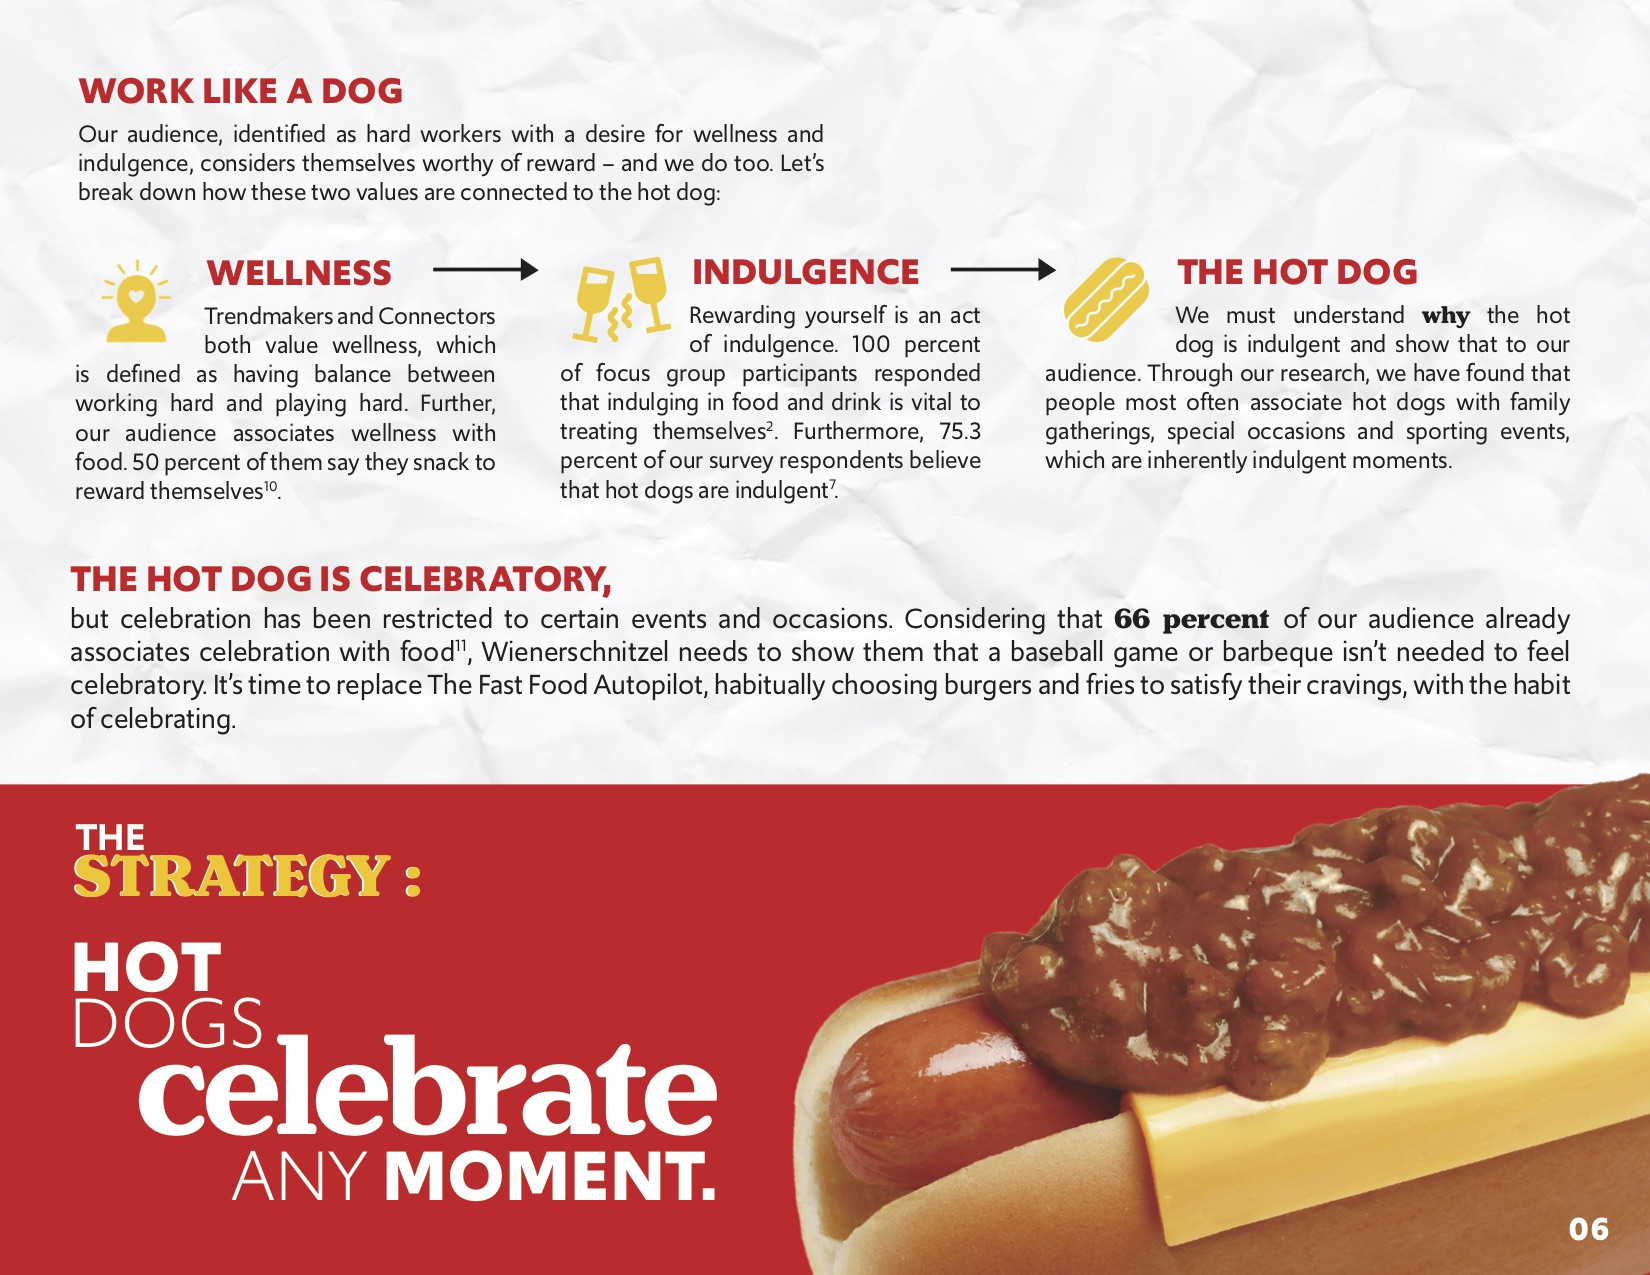 Using our Audience Sweet Spot, we came to the conclusion that the hot dog is inherently linked to wellness and indulgence through the celebratory moments in ones life. This led us to our final strategy:  hot dogs celebrate any moment.